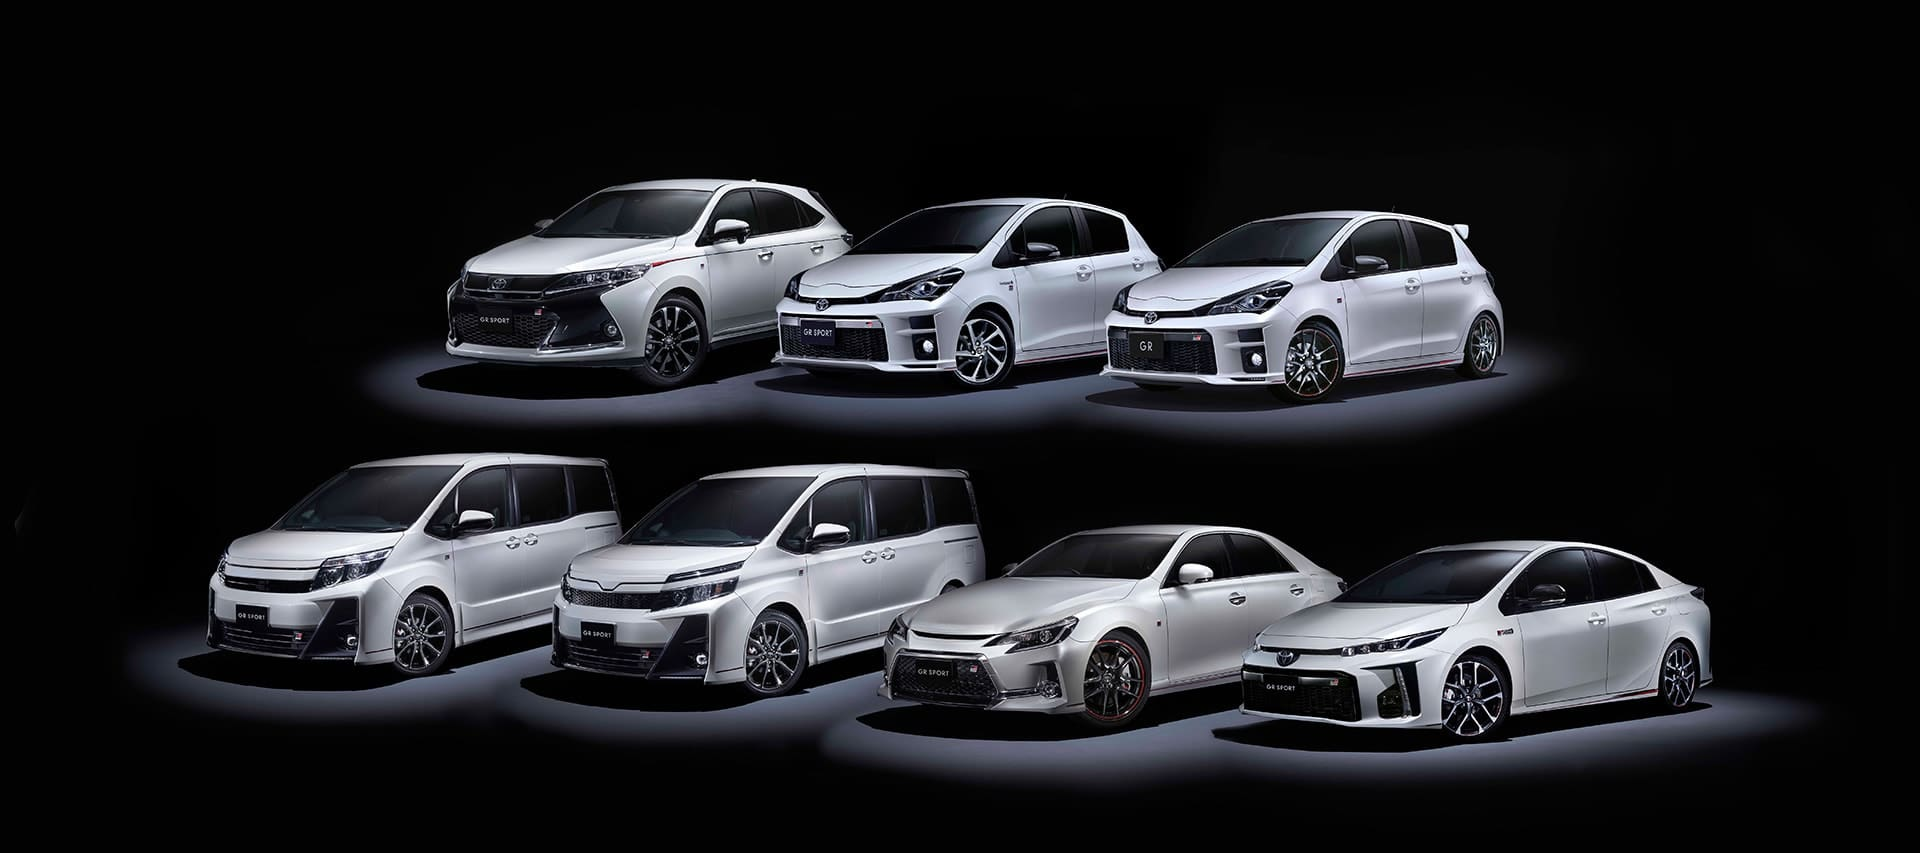 Toyota Levels Up with GR Performance Line